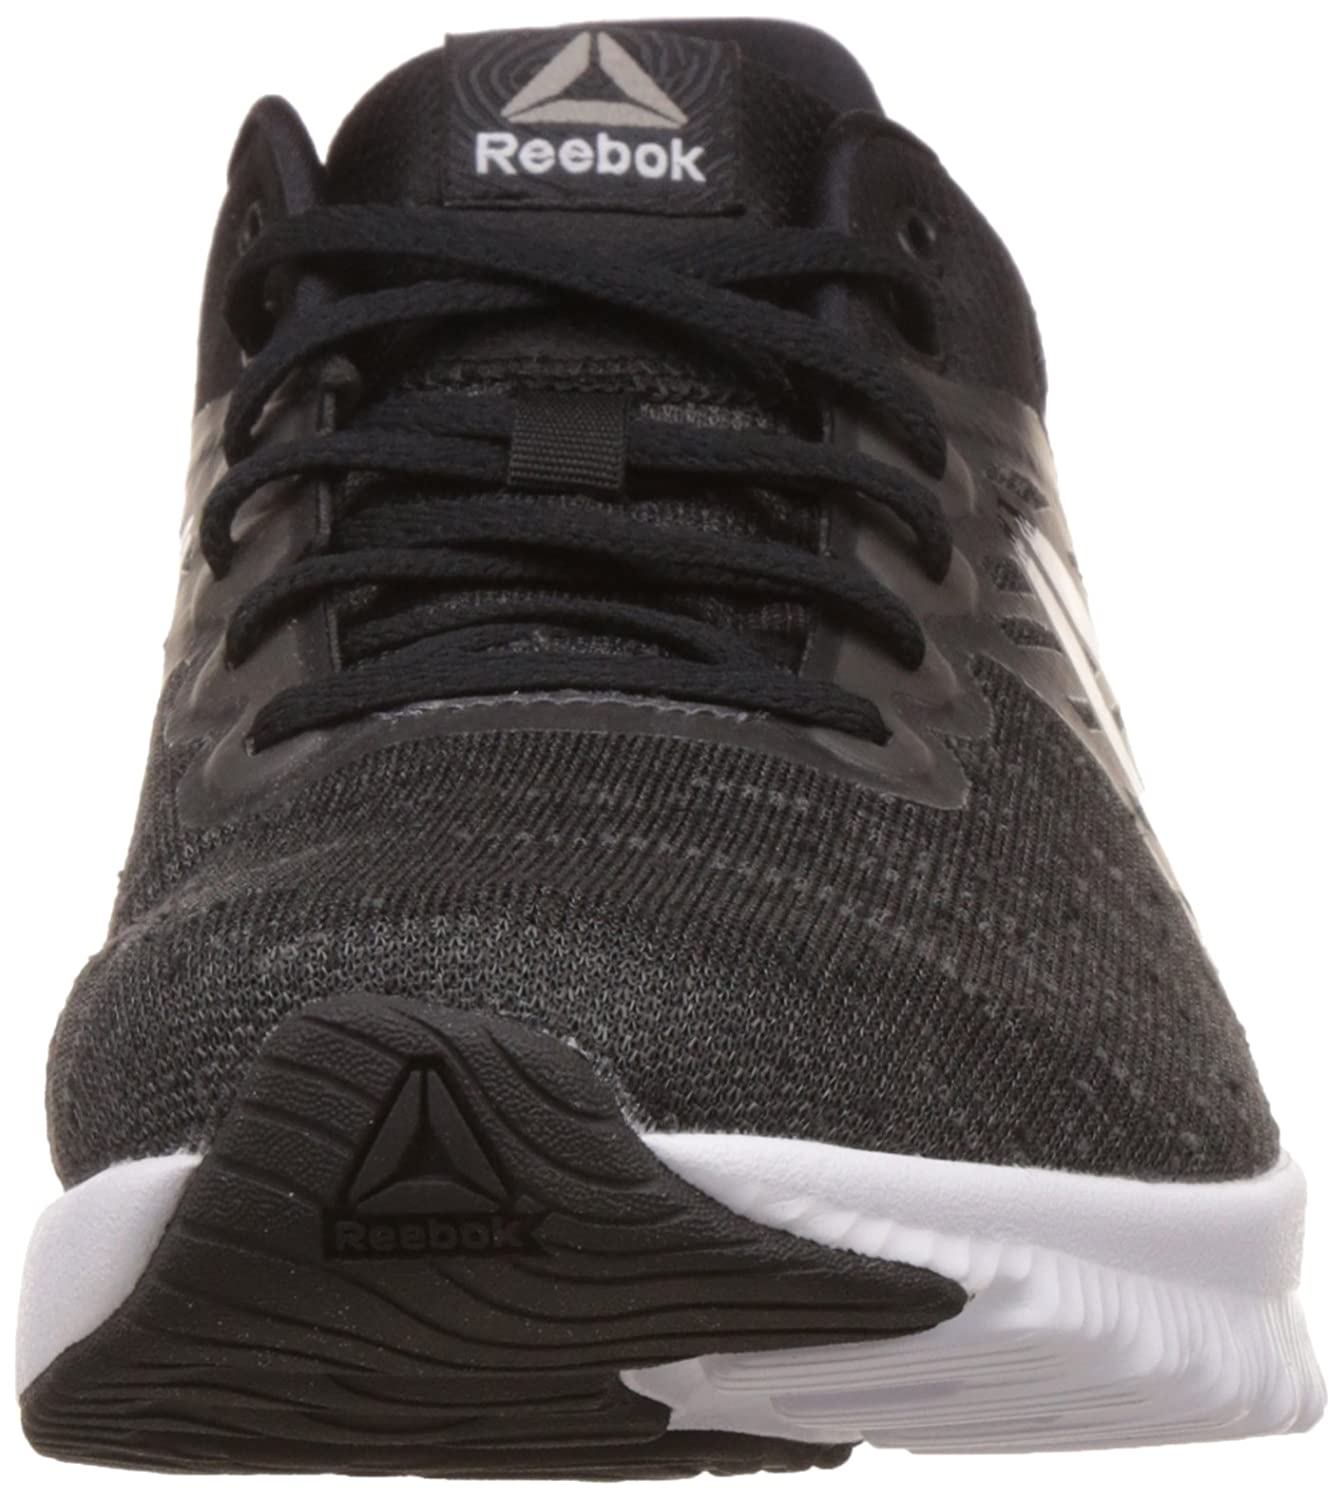 Reebok Men s OSR Distance 3.0 Running Shoes  Buy Online at Low Prices in  India - Amazon.in 0716a1198